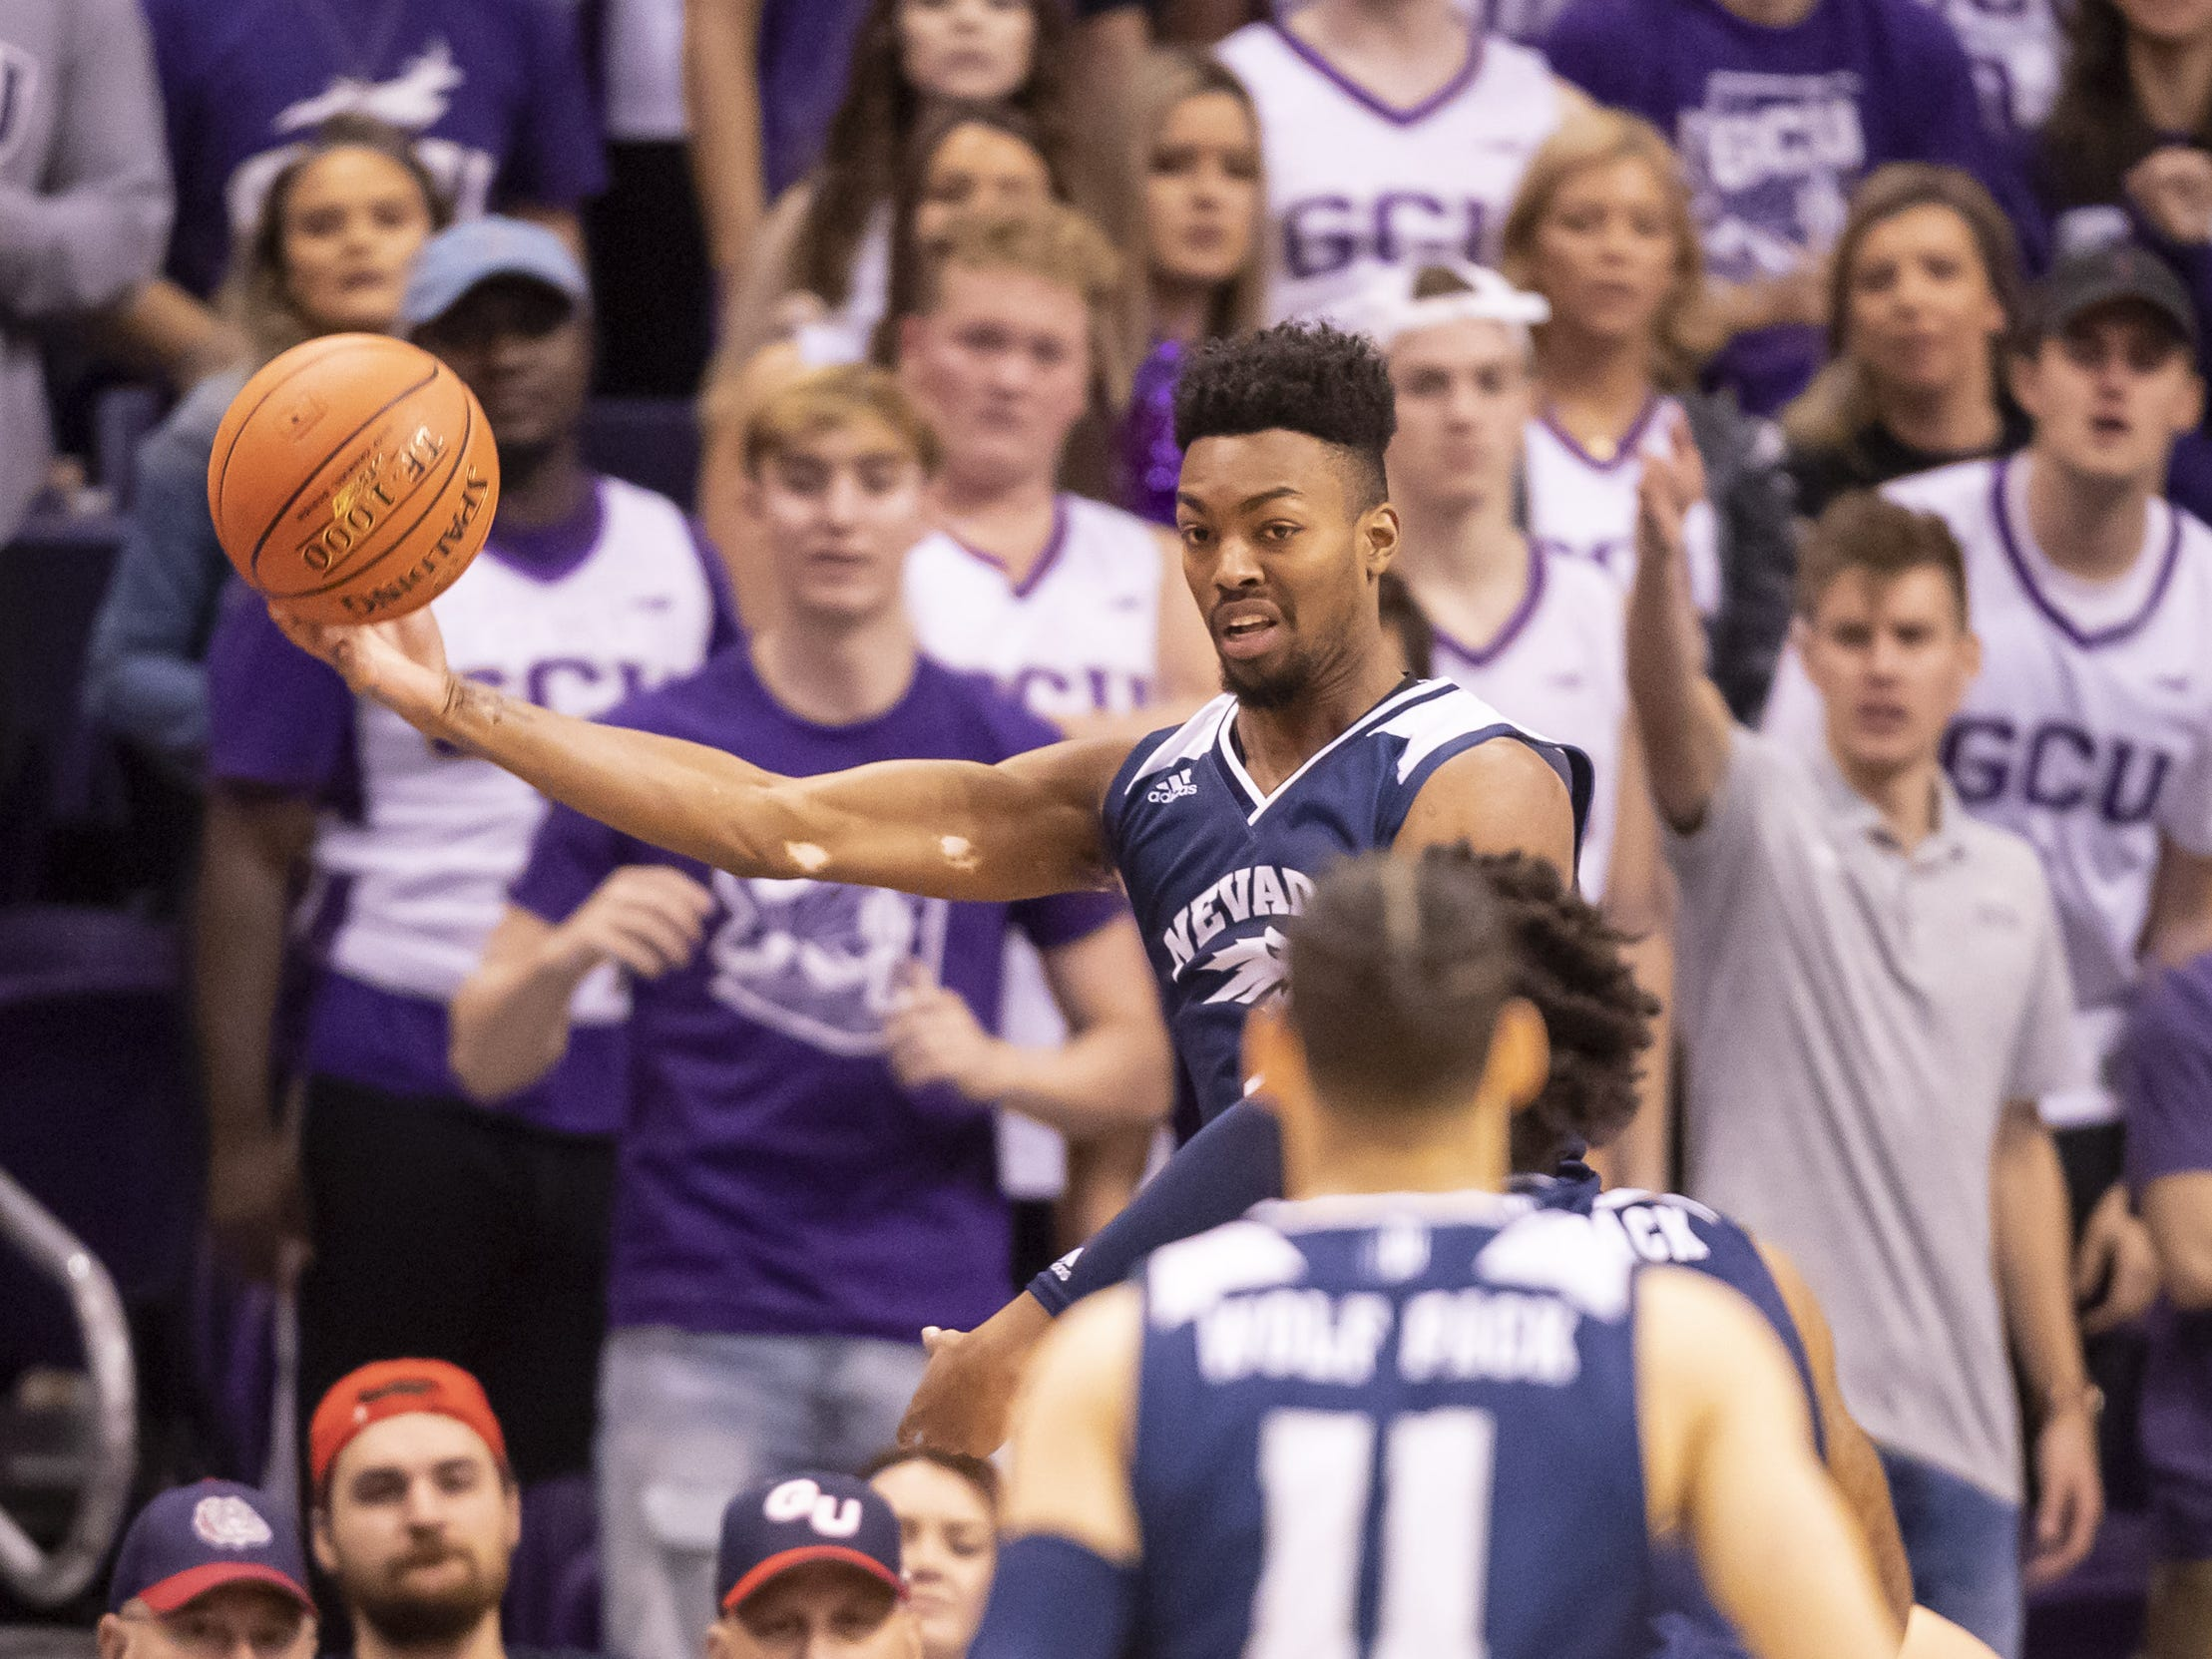 Forward Jordan Brown (21) of Nevada Wolf Pack saves the ball from going out of bounds against the Grand Canyon Antelopes during the 2018 Jerry Colangelo Classic at Talking Stick Resort Arena on Sunday, December 9, 2018 in Phoenix, Arizona.